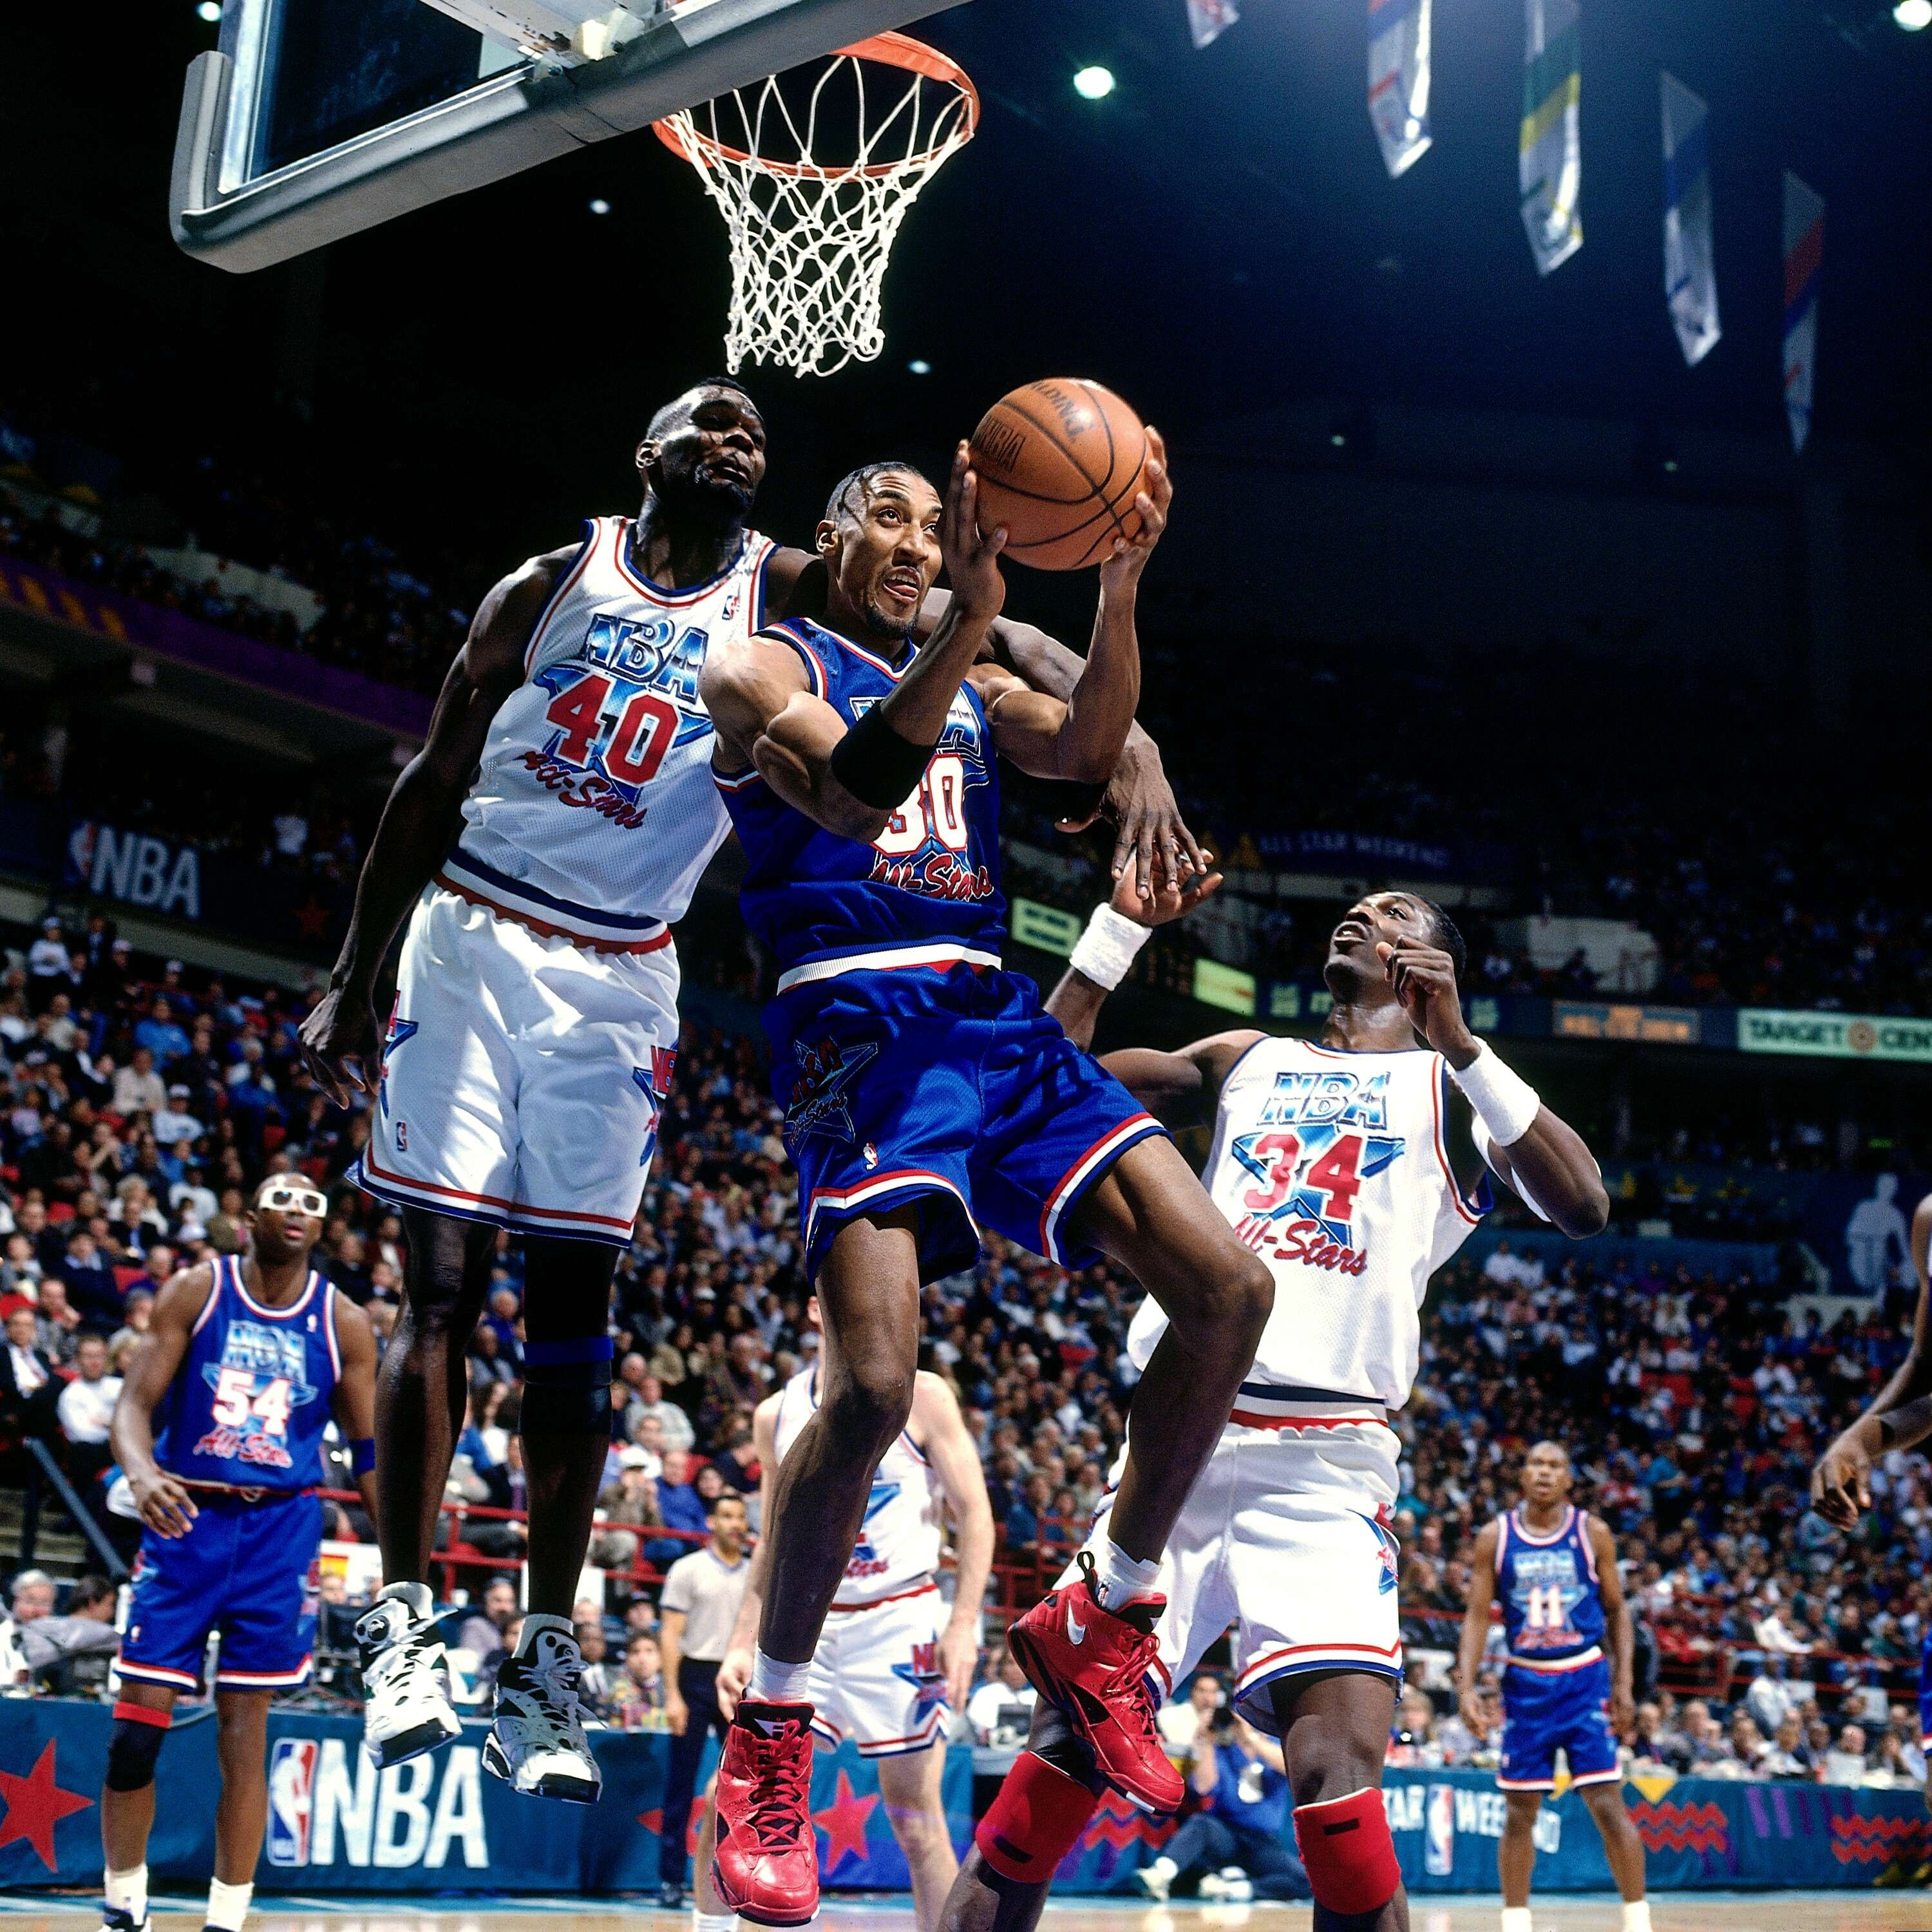 MINNEAPOLIS, MN - FEBRUARY 13:  Scottie Pippen #30 of the Eastern Conference All Stars shoots against Shawn Kemp #40 of the Western Conference All Stars during the 1994 NBA All Star Game played on February 13, 1994 at the Target Center in Minneapolis, Min (Foto: NBAE/Getty Images)